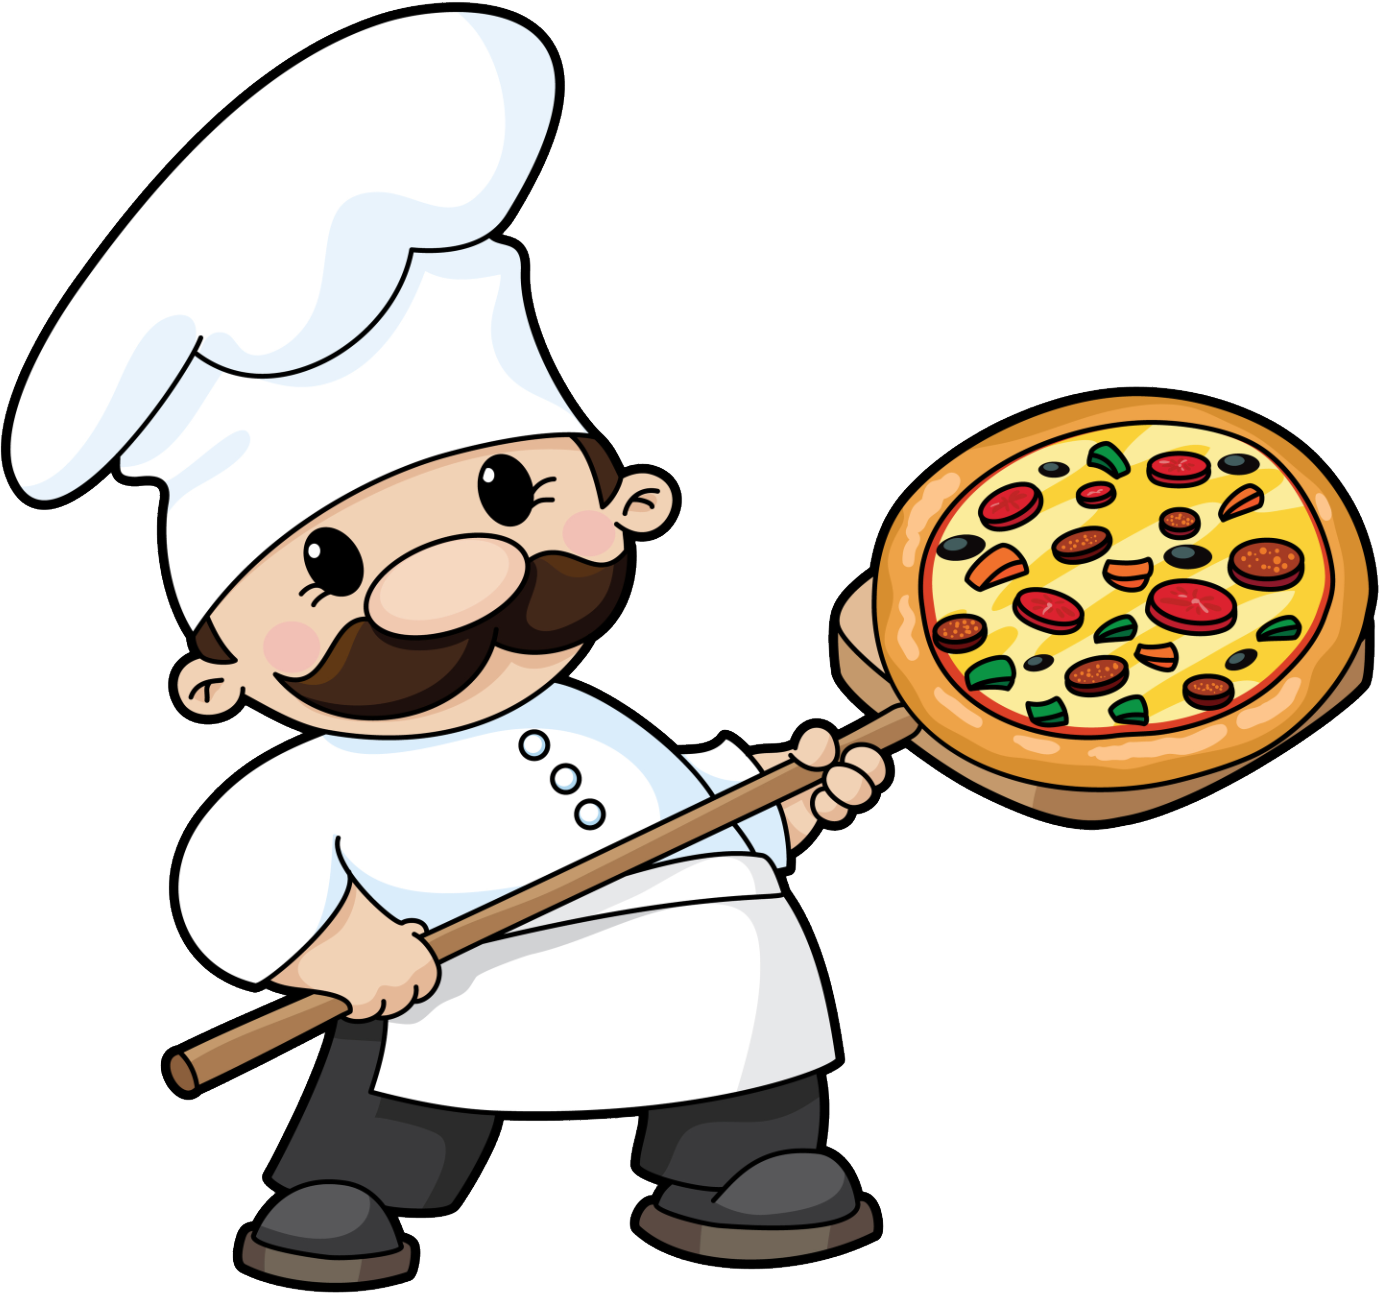 Beat up car clipart clip art transparent Not Your Average Pizza Place - Top Rated Pizza in Buffalo, NY - Join ... clip art transparent